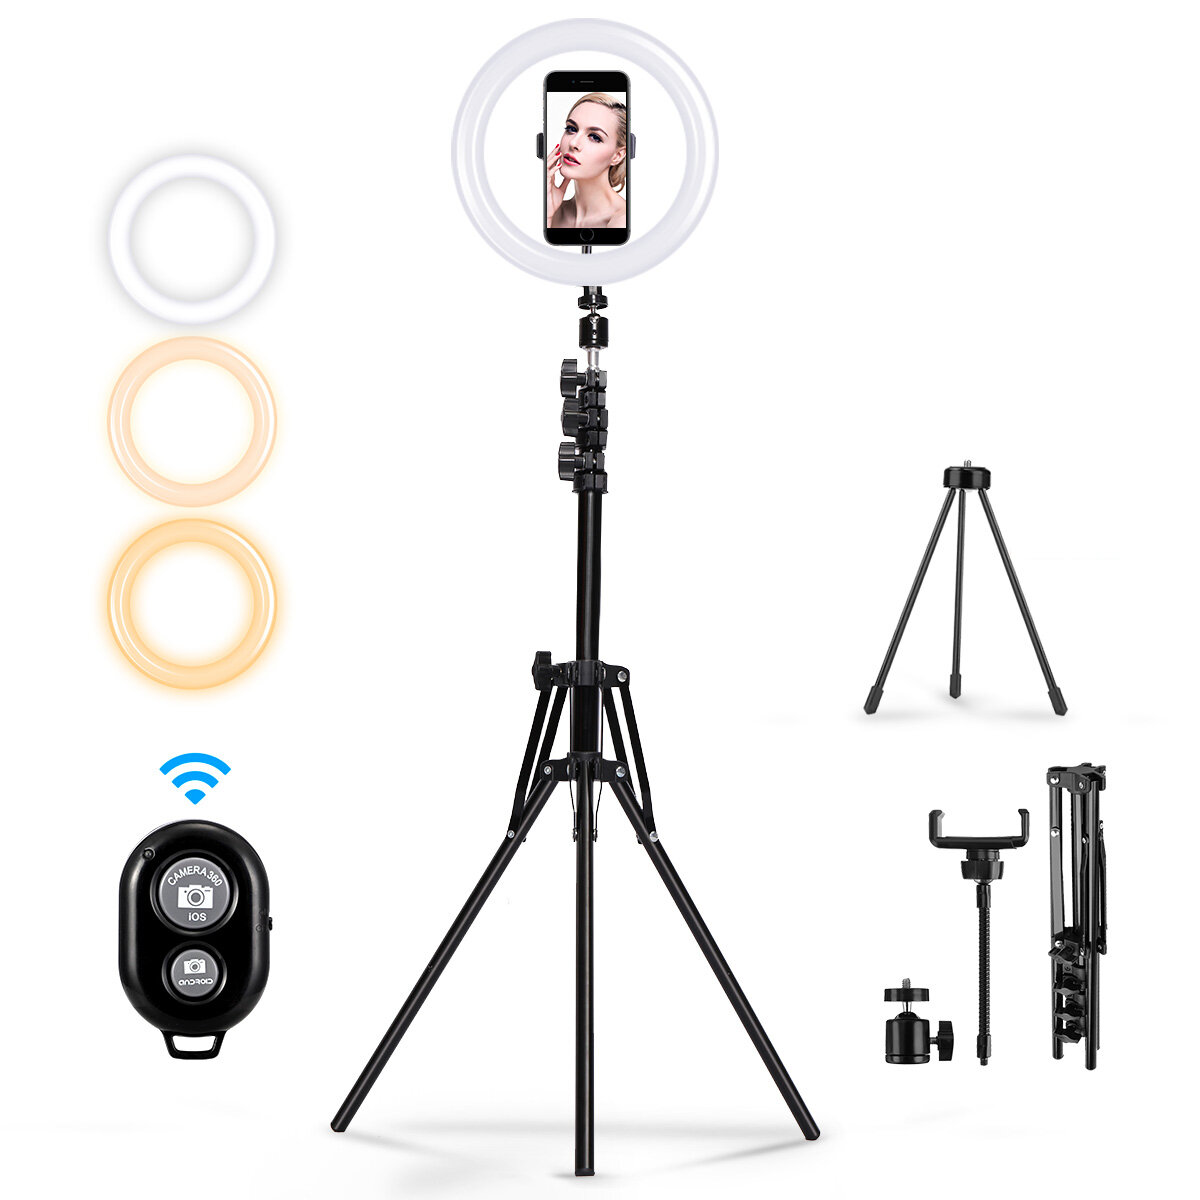 MOHOO 160cm 10 inch 3 Color Modes 10 Brightness Levels USB Video Light Tripod Stand for Tik Tok Youtube Live Streaming  - buy with discount